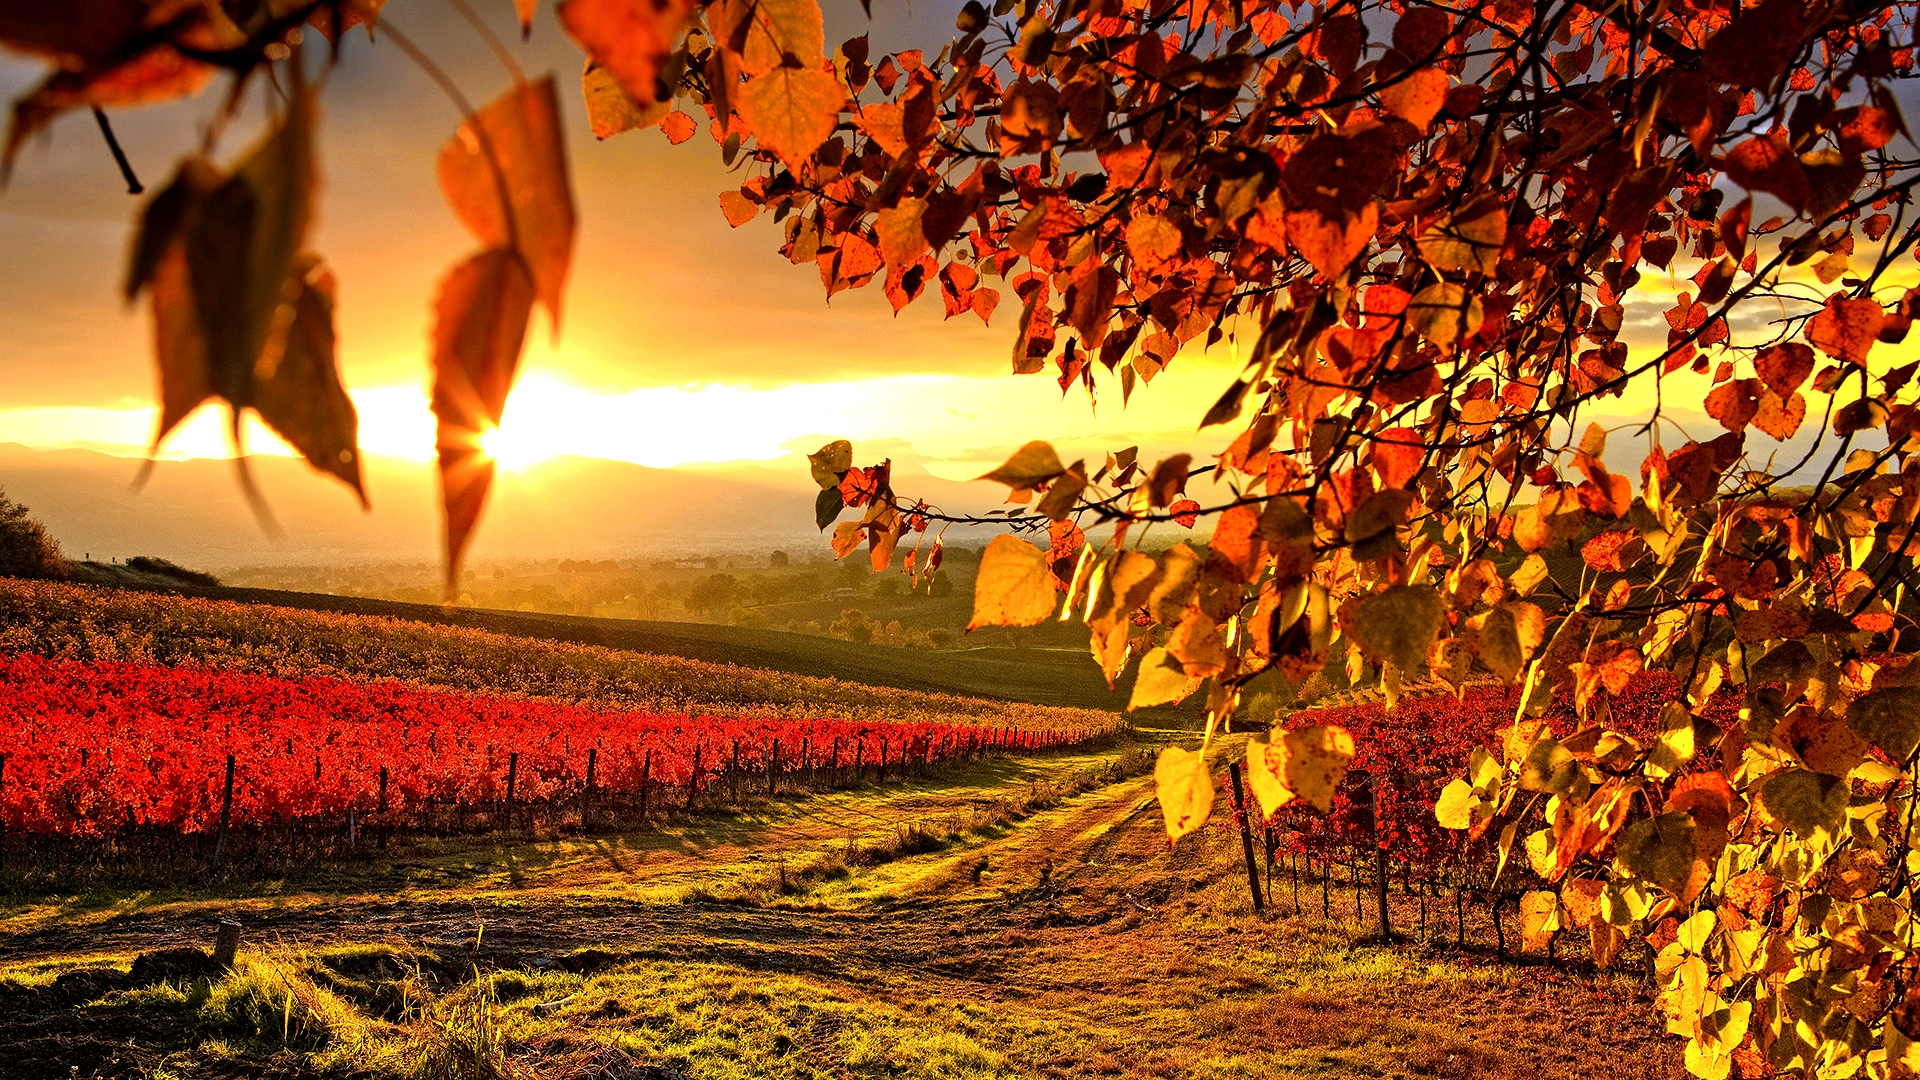 Vineyard autumn